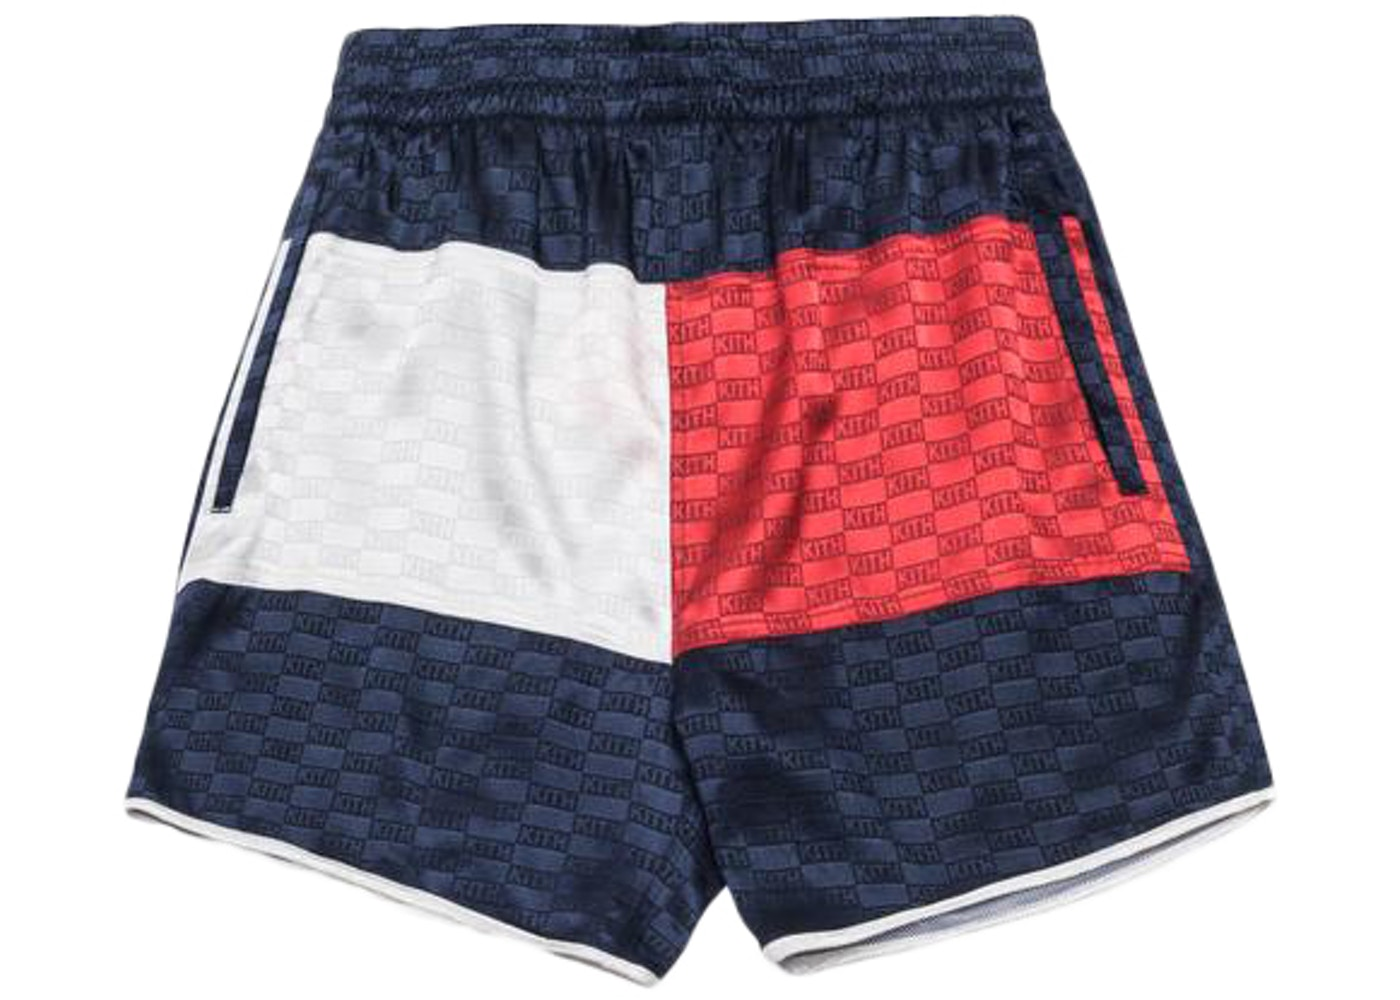 21344ad128d7 Kith x Tommy Hilfiger Satin Boxing Short Navy. x Tommy Hilfiger Satin Boxing